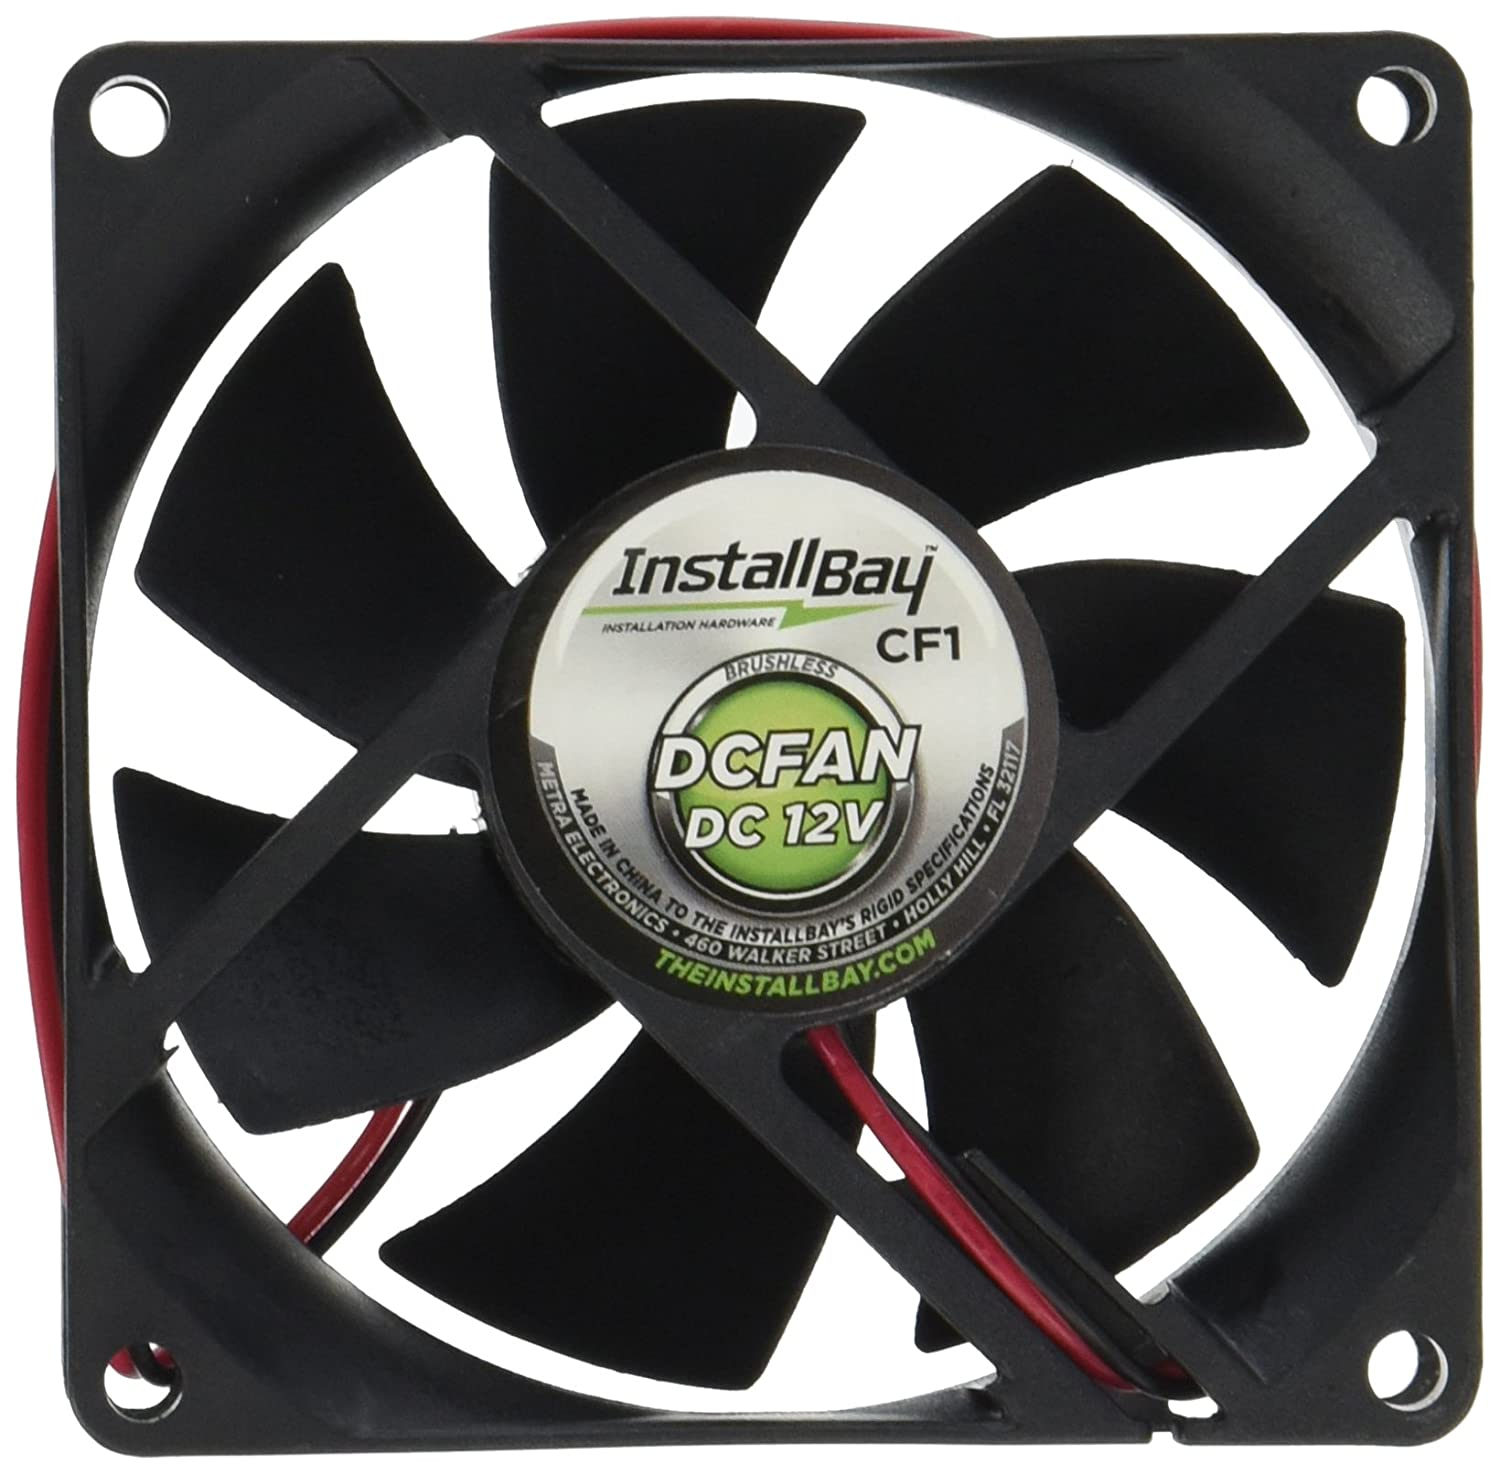 Install Bay CF1 Cooling Fan 12 Volt 3.1 Square-Inch By 1-Inch Deep Each Metra Electronics Corporation